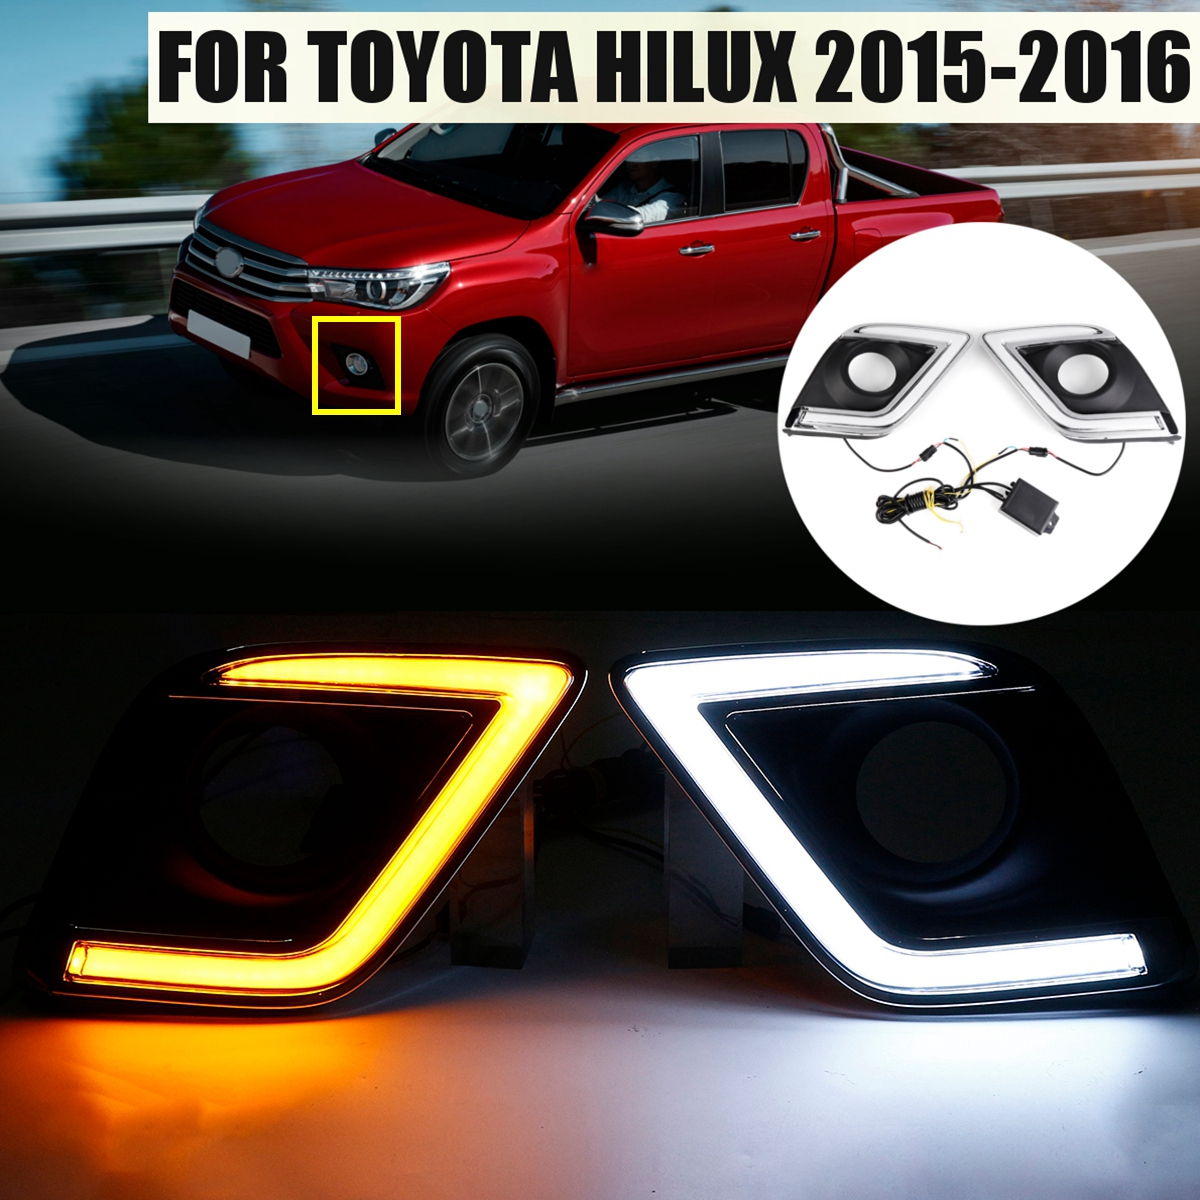 For Toyota Hilux Revo 2015-2016 1 Pair Car LED DRL Daytime Running Lights Turn Signal Lamp DRL fog lamp cover with turn signal for honda civic 2016 2017 2018 turn signal relay car styling waterproof 12v led car drl daytime running lights fog lamp cover